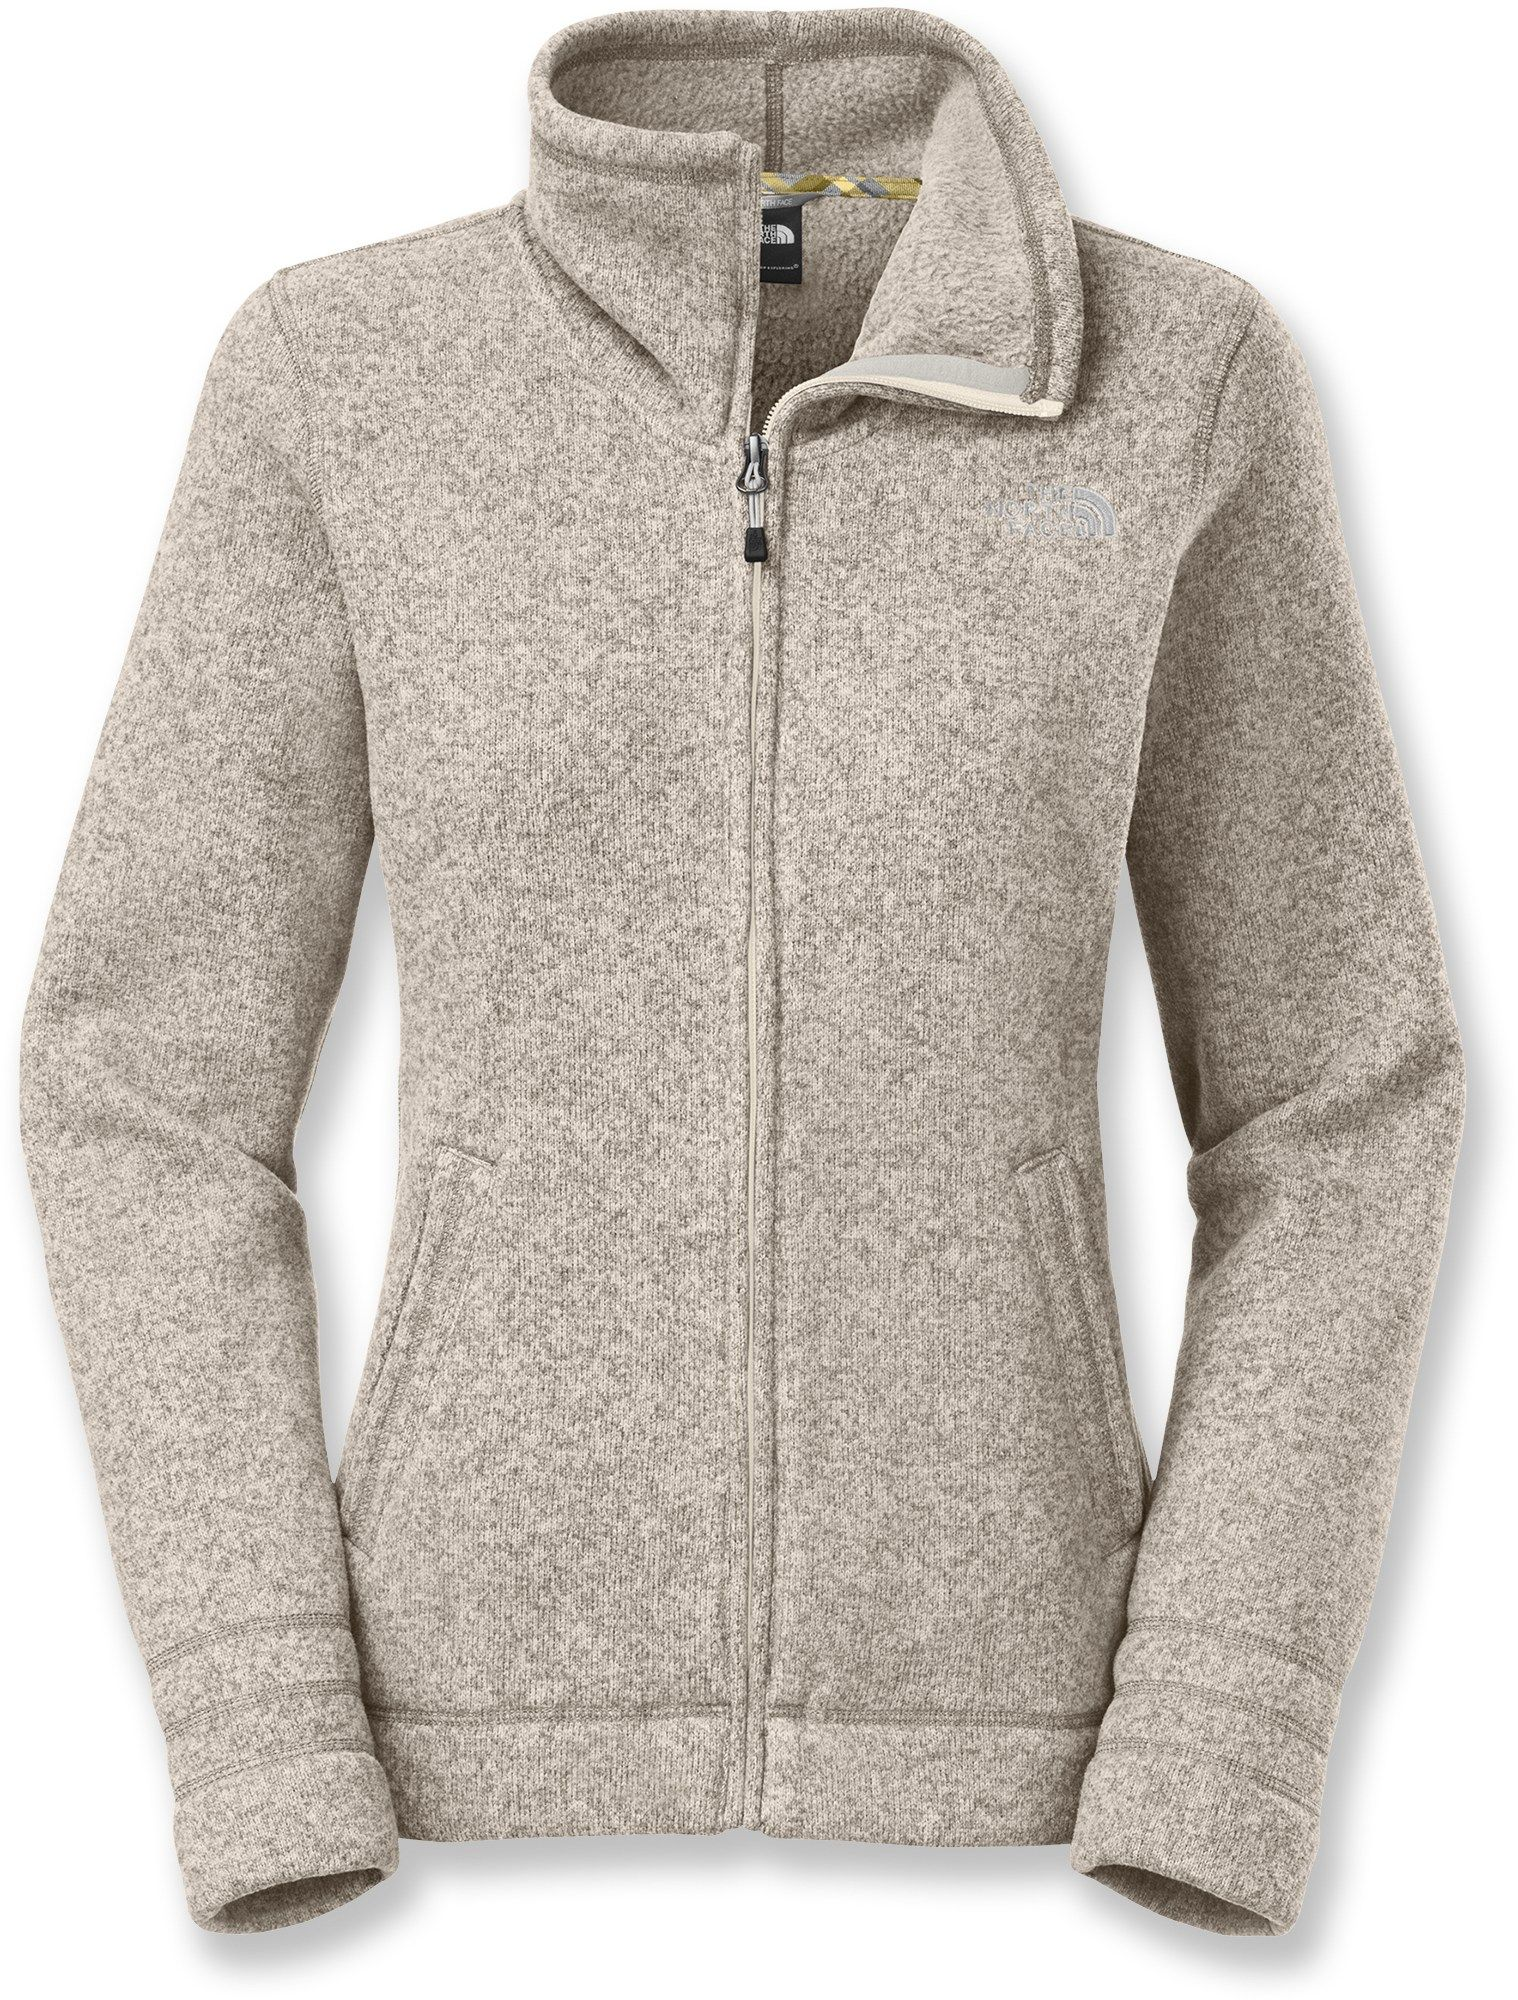 b3b3a9451 Crescent Sunset Full-Zip Fleece Jacket - Women's in 2019 | Costly ...